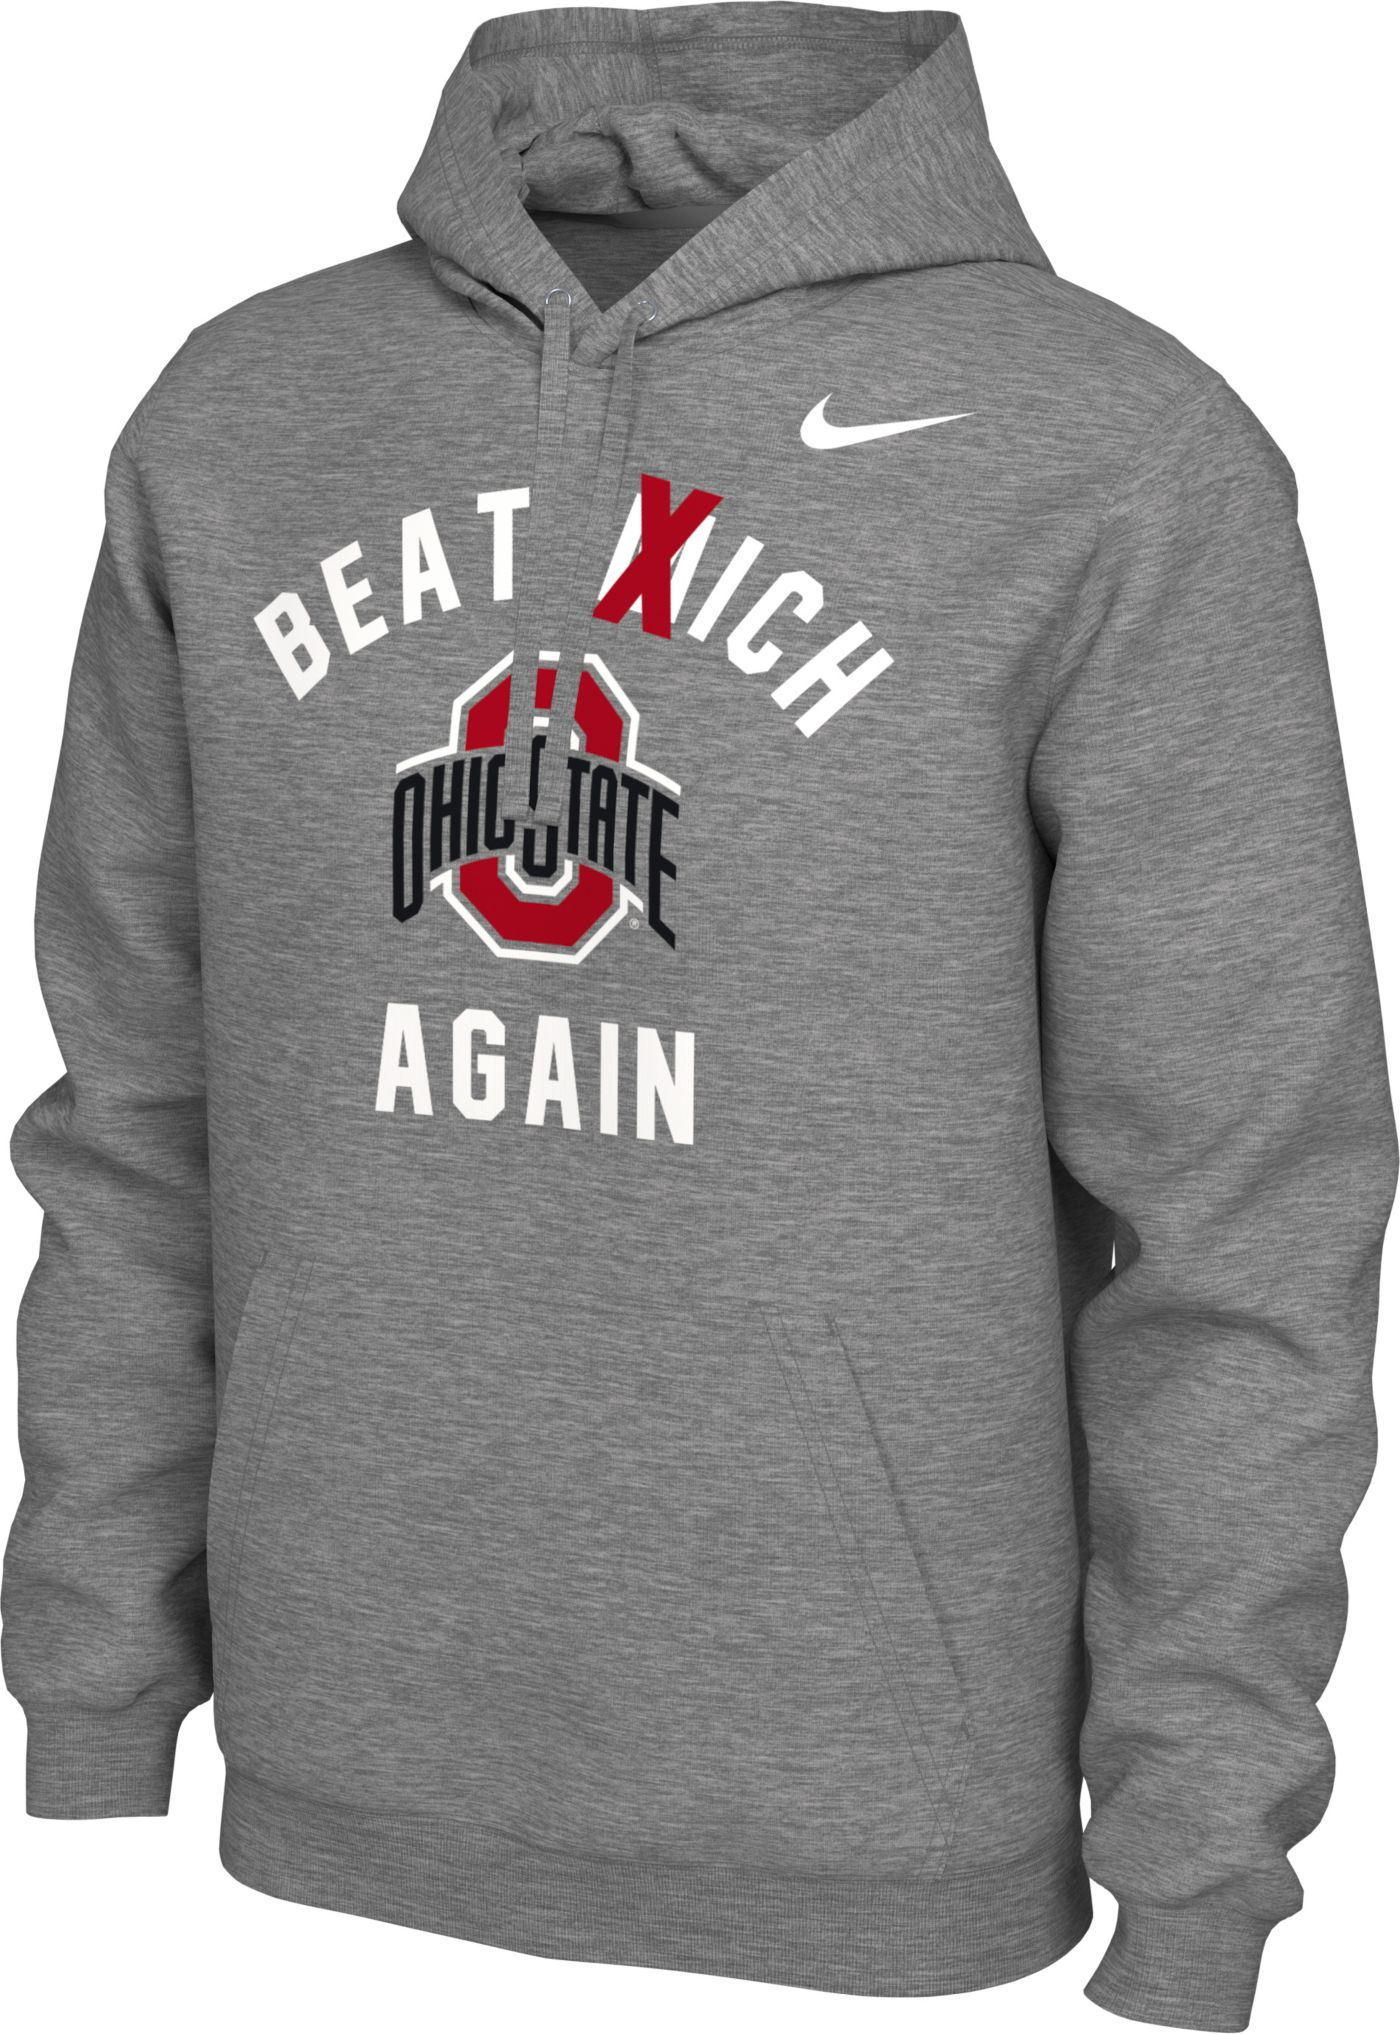 Nike Men's Ohio State Buckeyes Gray 'Beat Mich Again' Local Pullover Hoodie